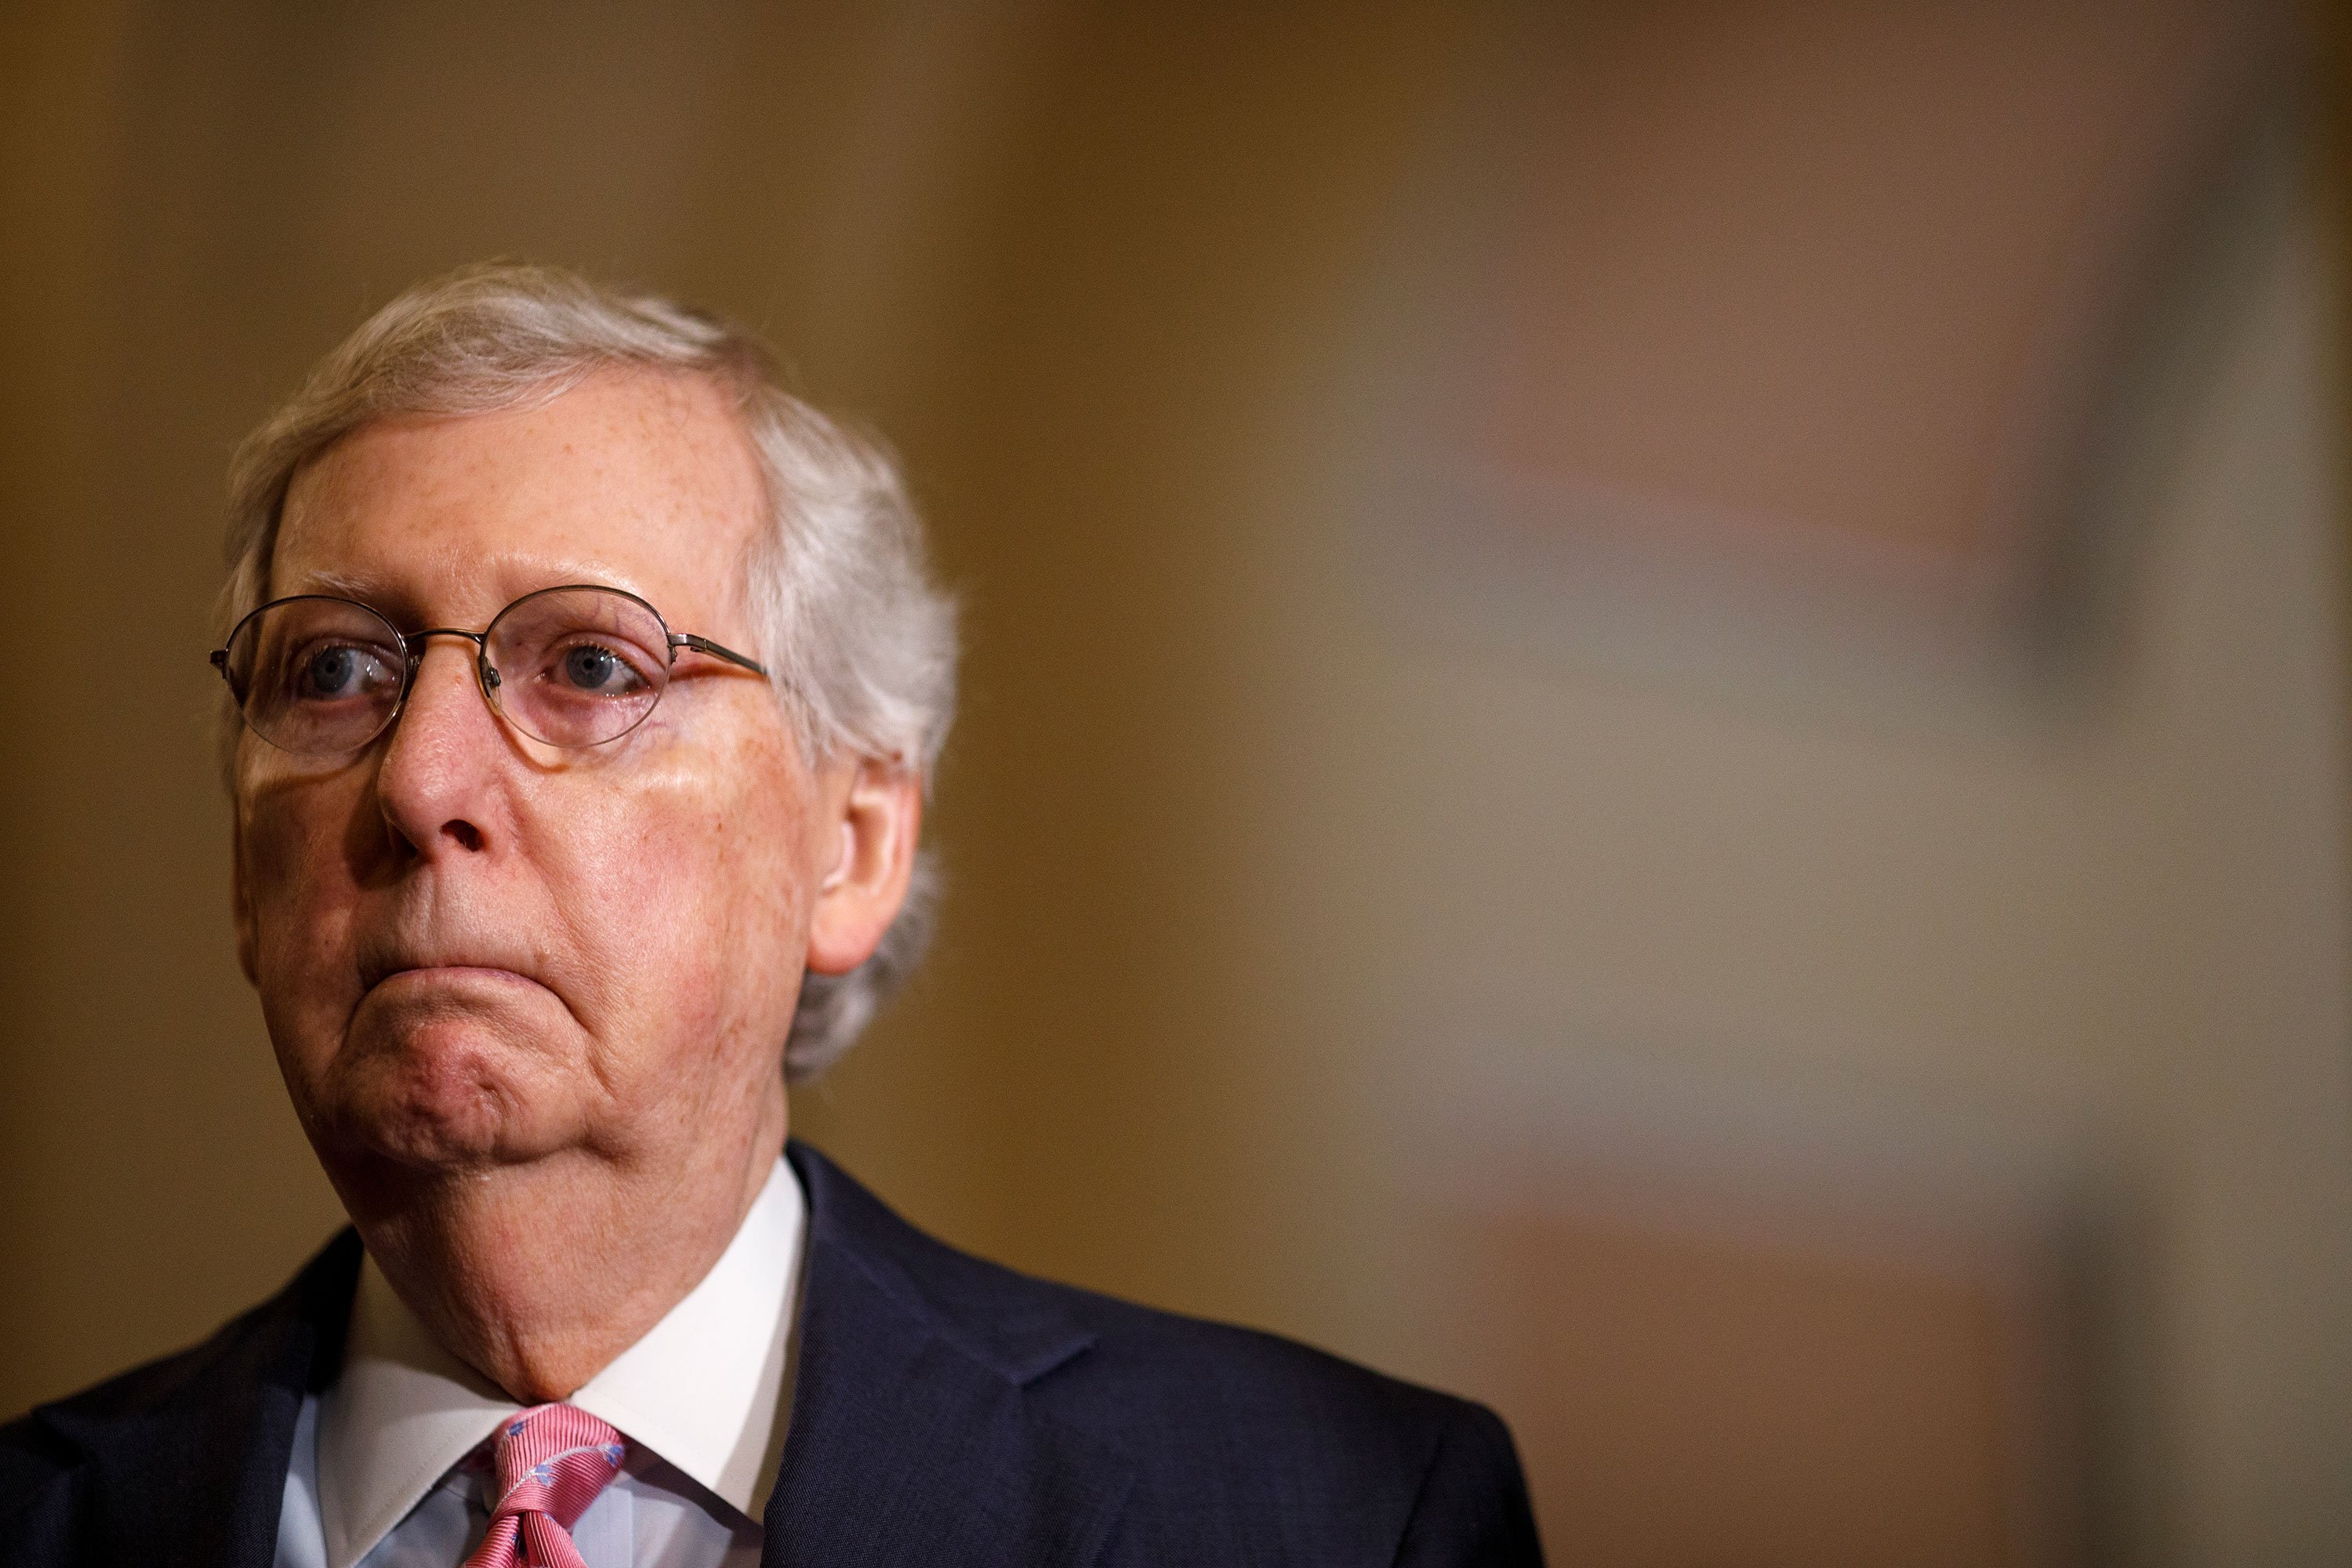 McConnell backs $250 million to boost election security and Democrats are claiming victory